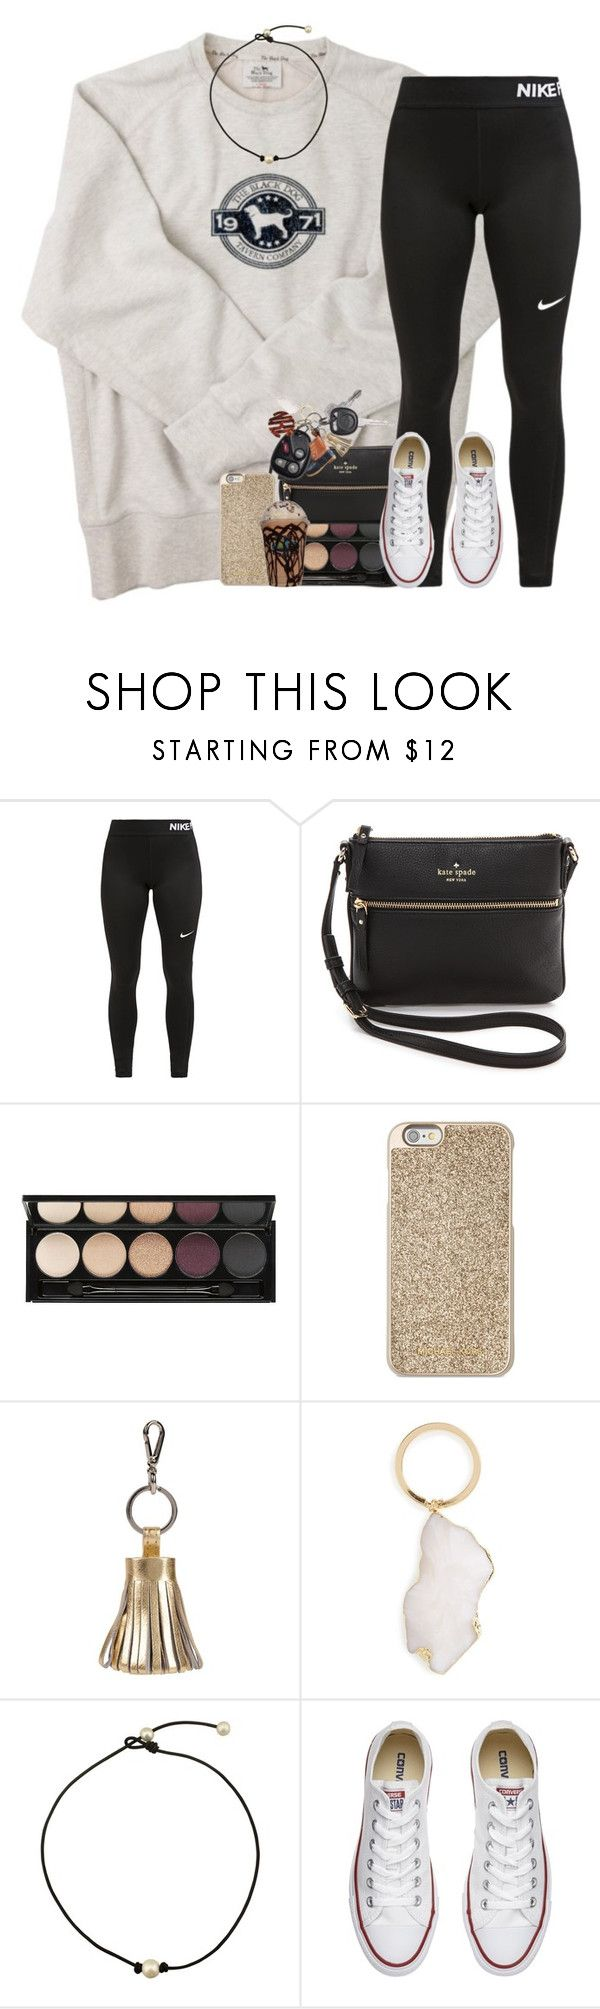 Day 2; Christmas Shopping at the Mall by abbypj on Polyvore featuring NIKE, Converse, Kate Spade, BP., Michael Kors, ILI, Witchery, Pieces and delisdecembercontest